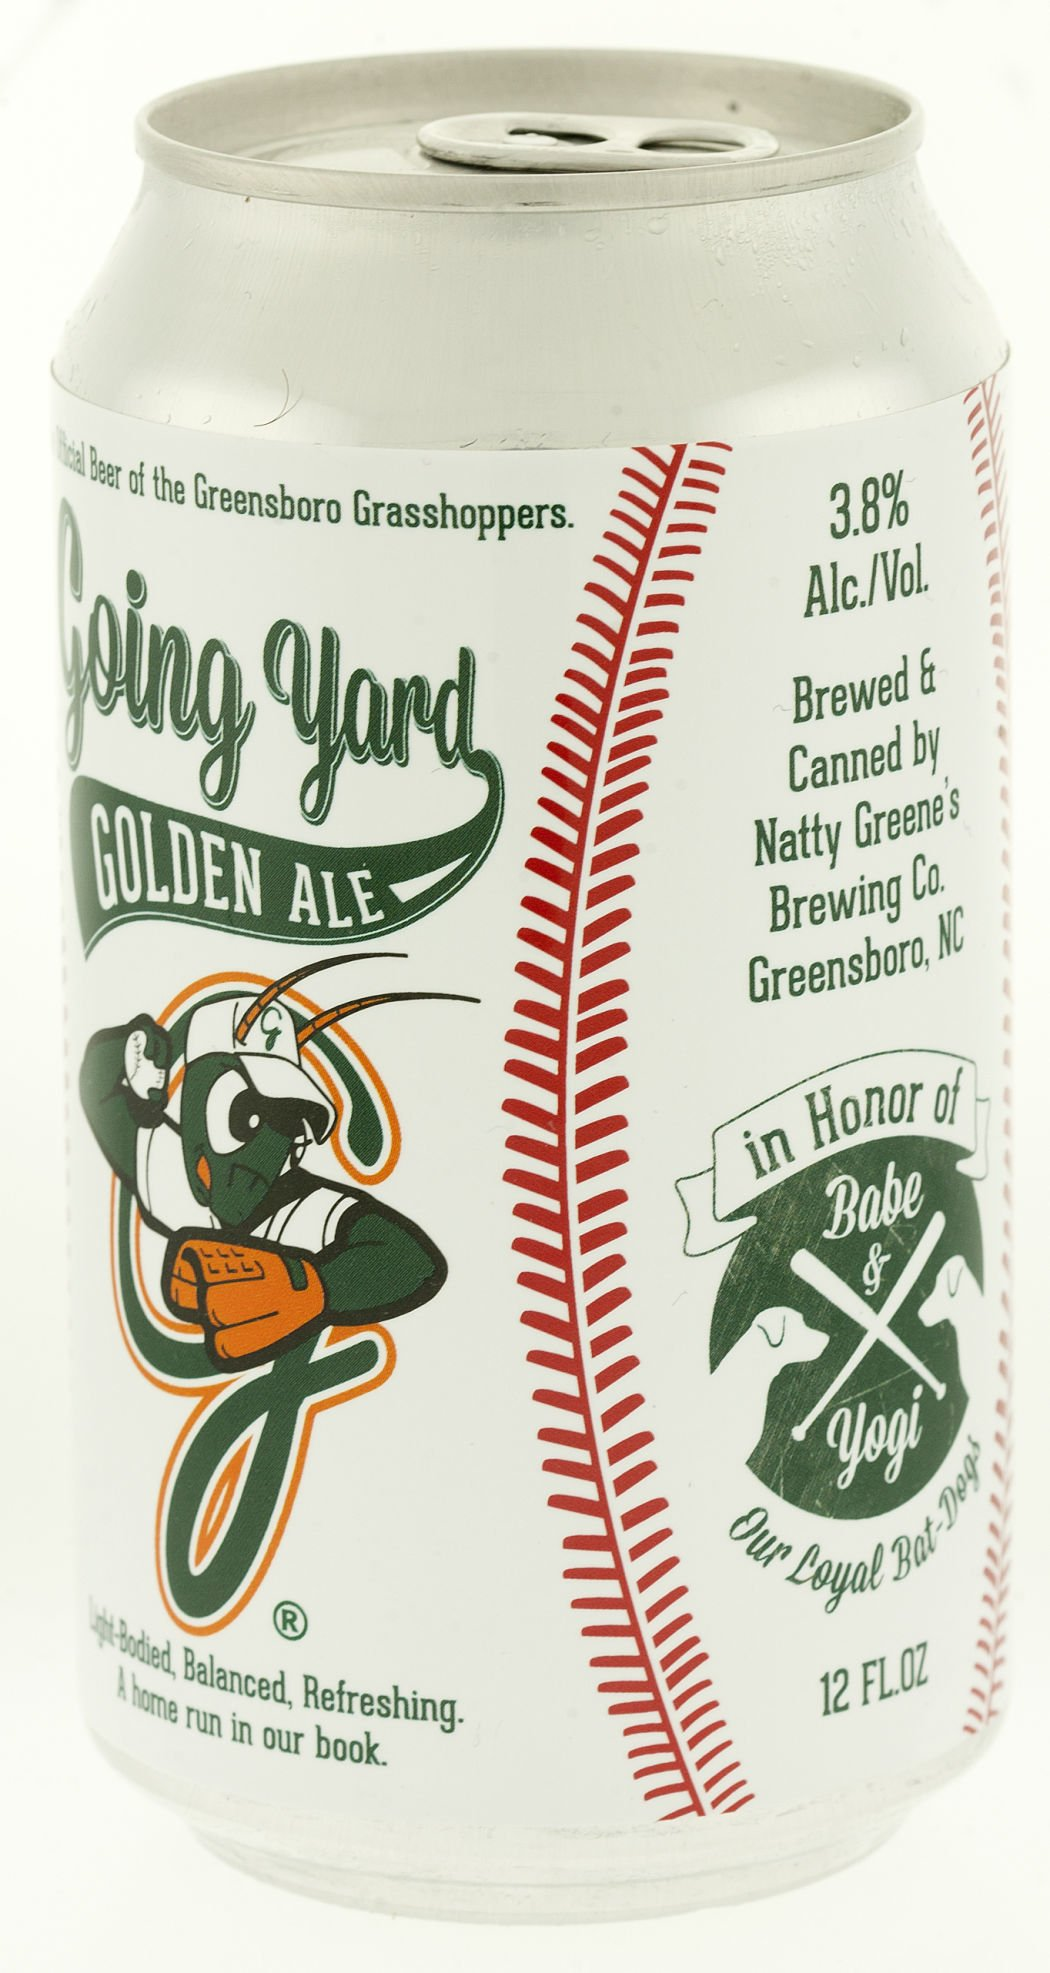 Going Yard: New beer from Natty Greene's making its debut at